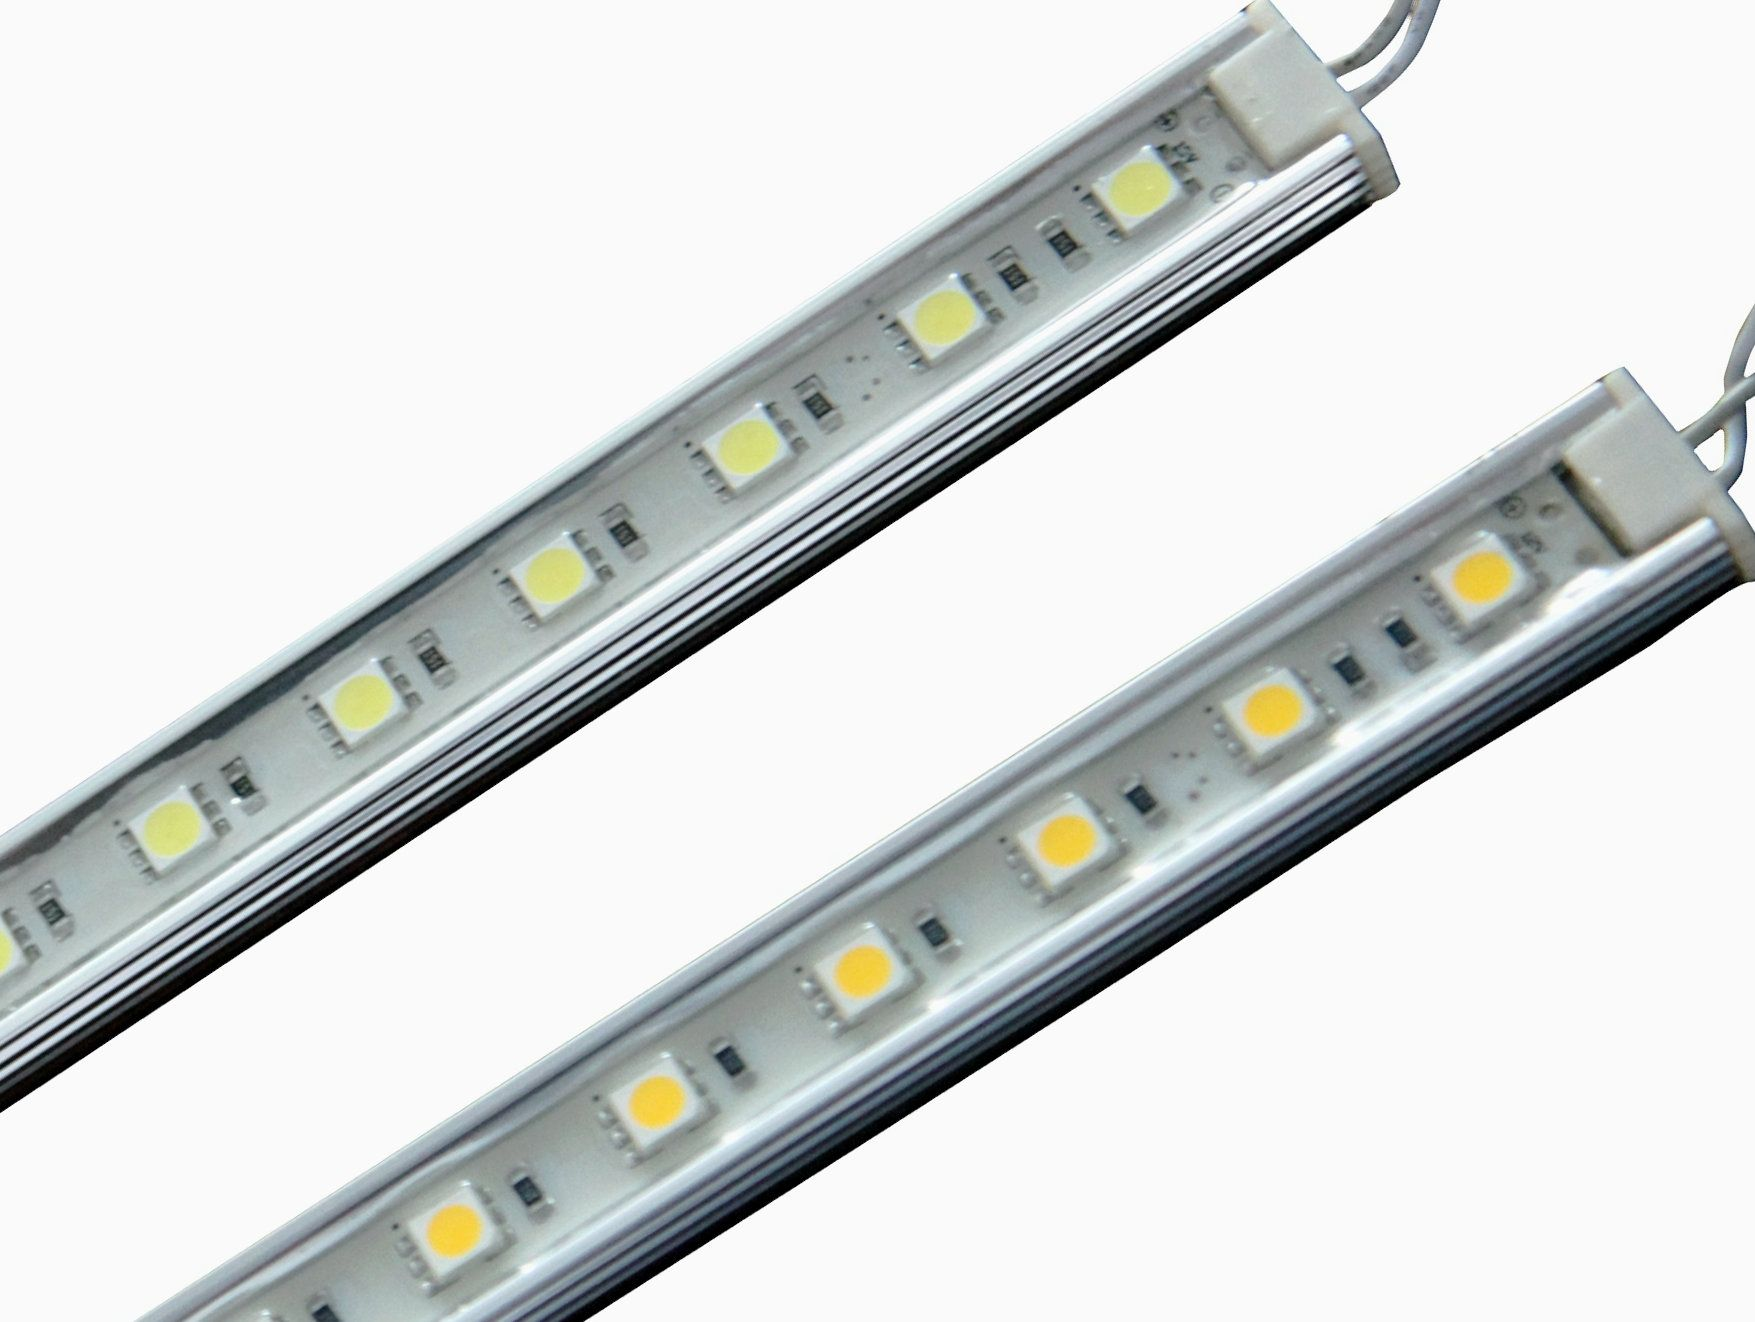 Led rigid strip lights kit httpscartclub pinterest light led rigid strip lights kit aloadofball Image collections